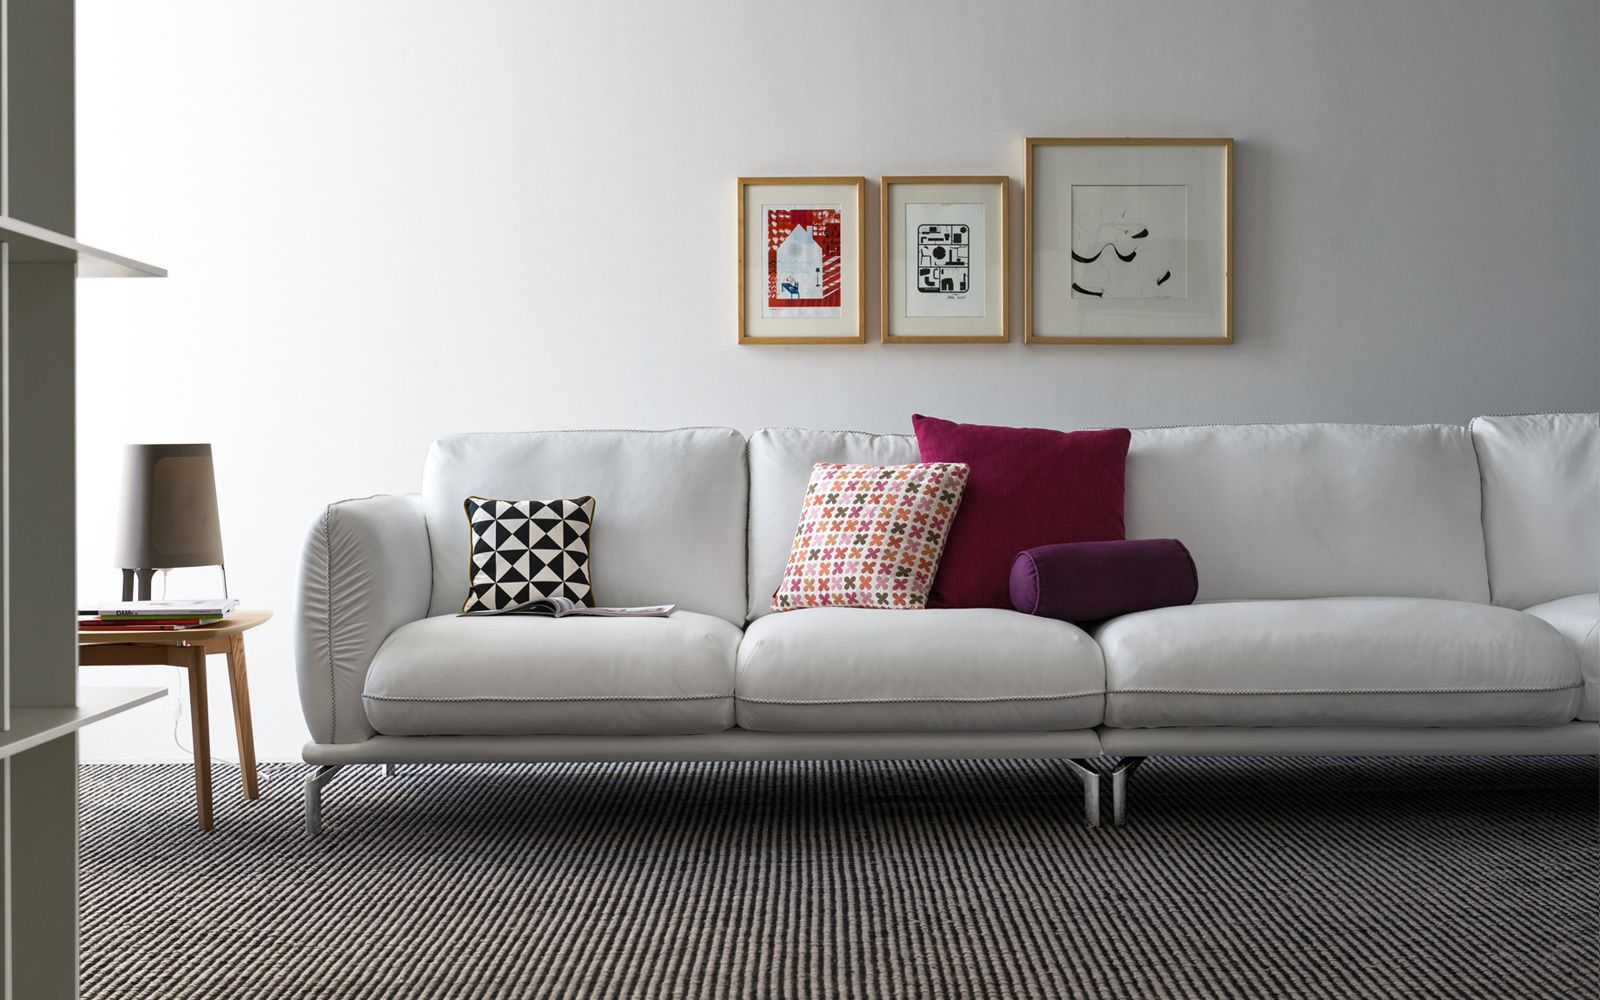 The Taylor sofa by Calligaris is an elegant sofa with beautiful stitching  detail. Available in